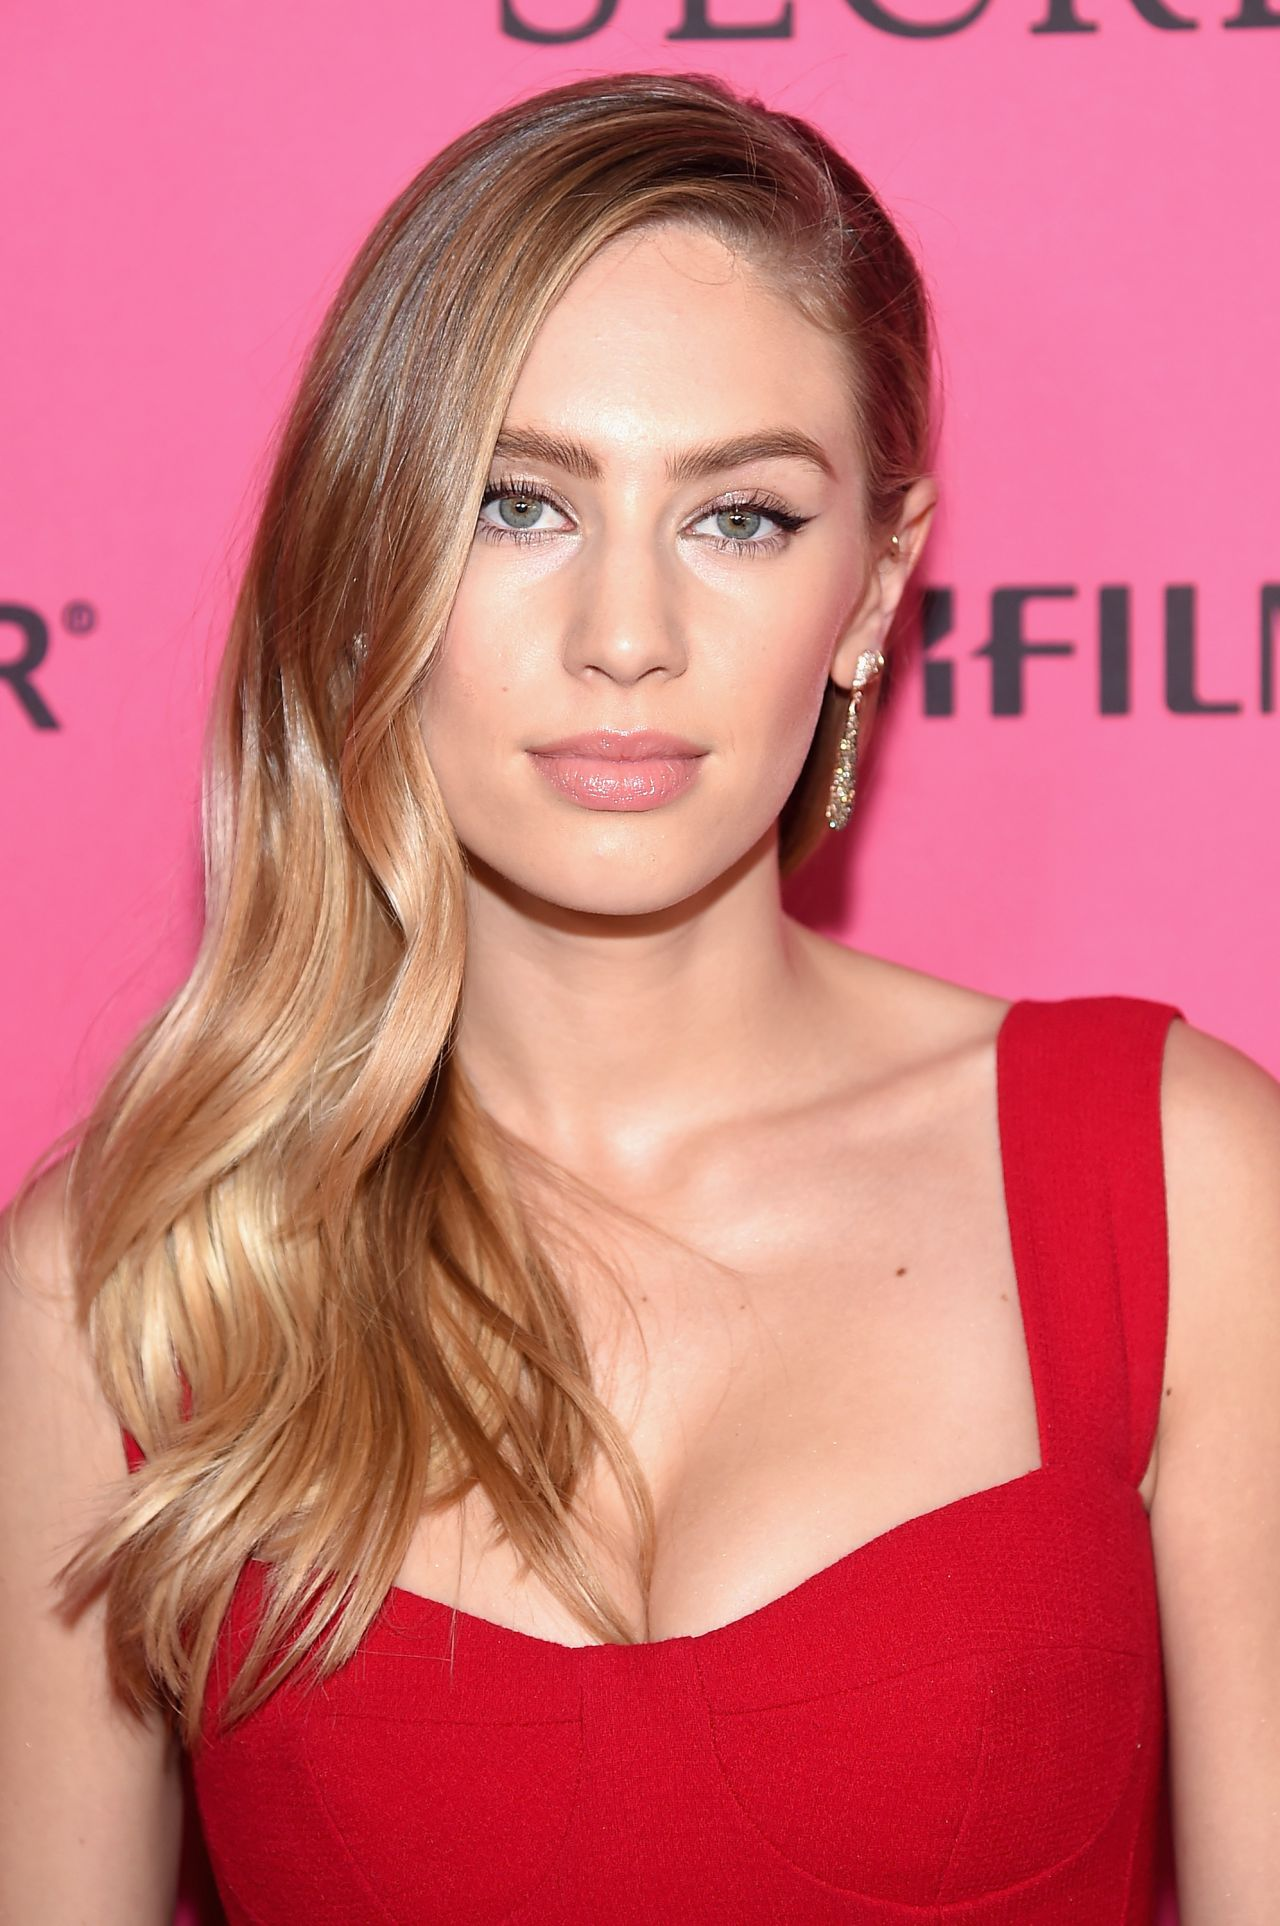 Dylan penn victoria s secret fashion show 2015 after party in